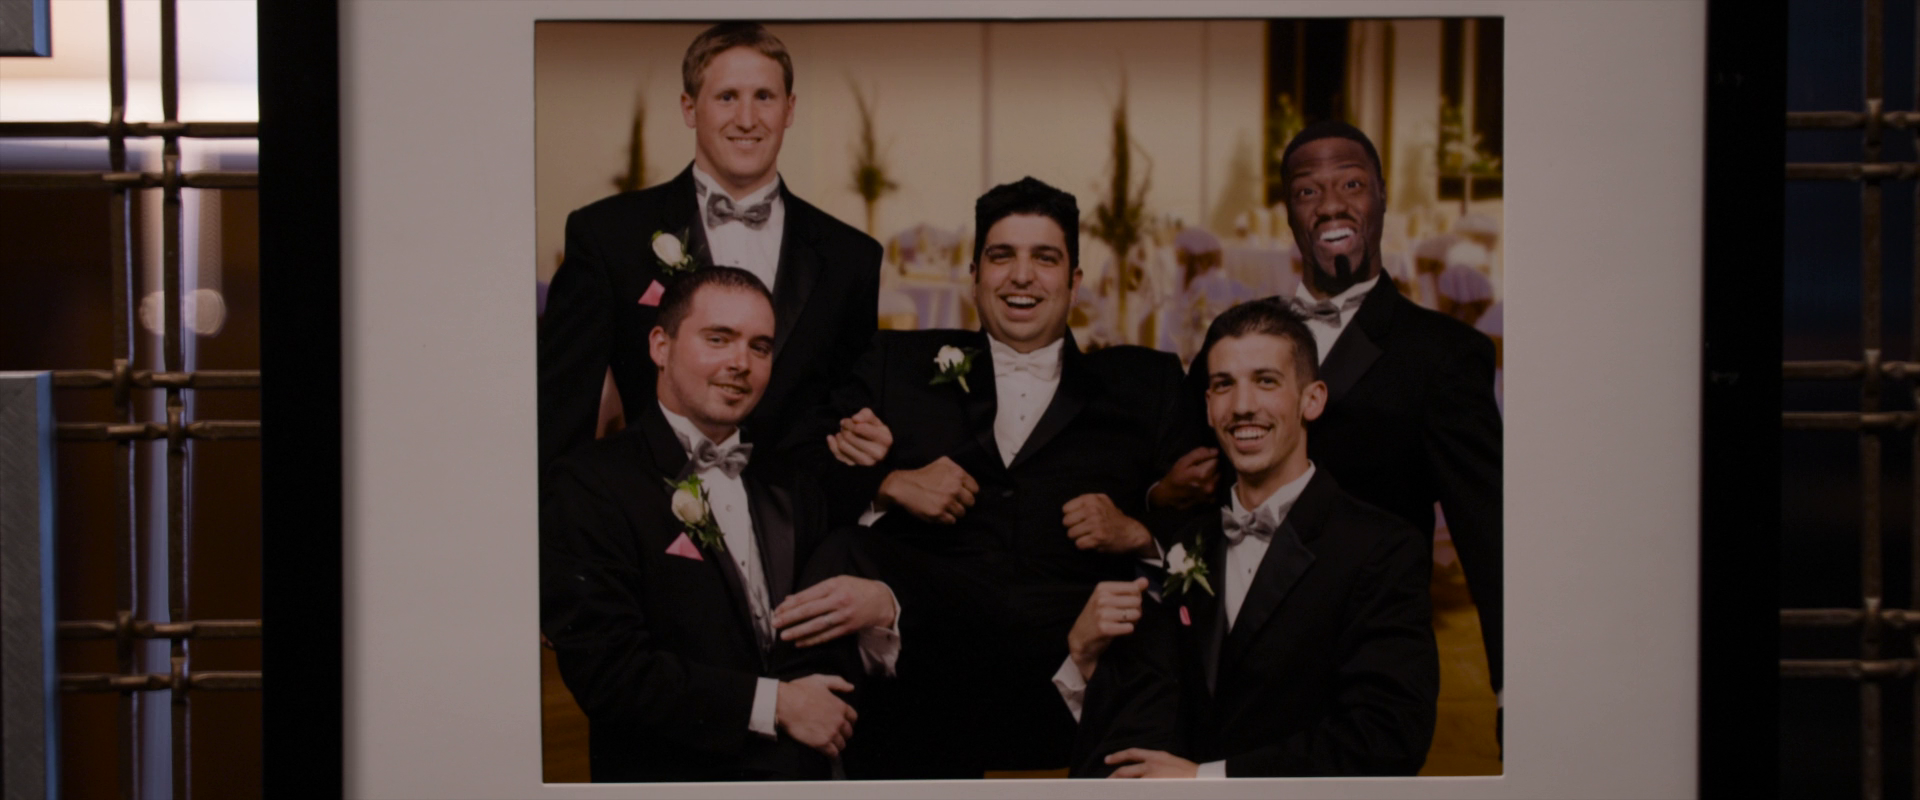 The Wedding Ringer / Шафер напрокат [2014 / BDRip 720p] [Comedy / Romance]